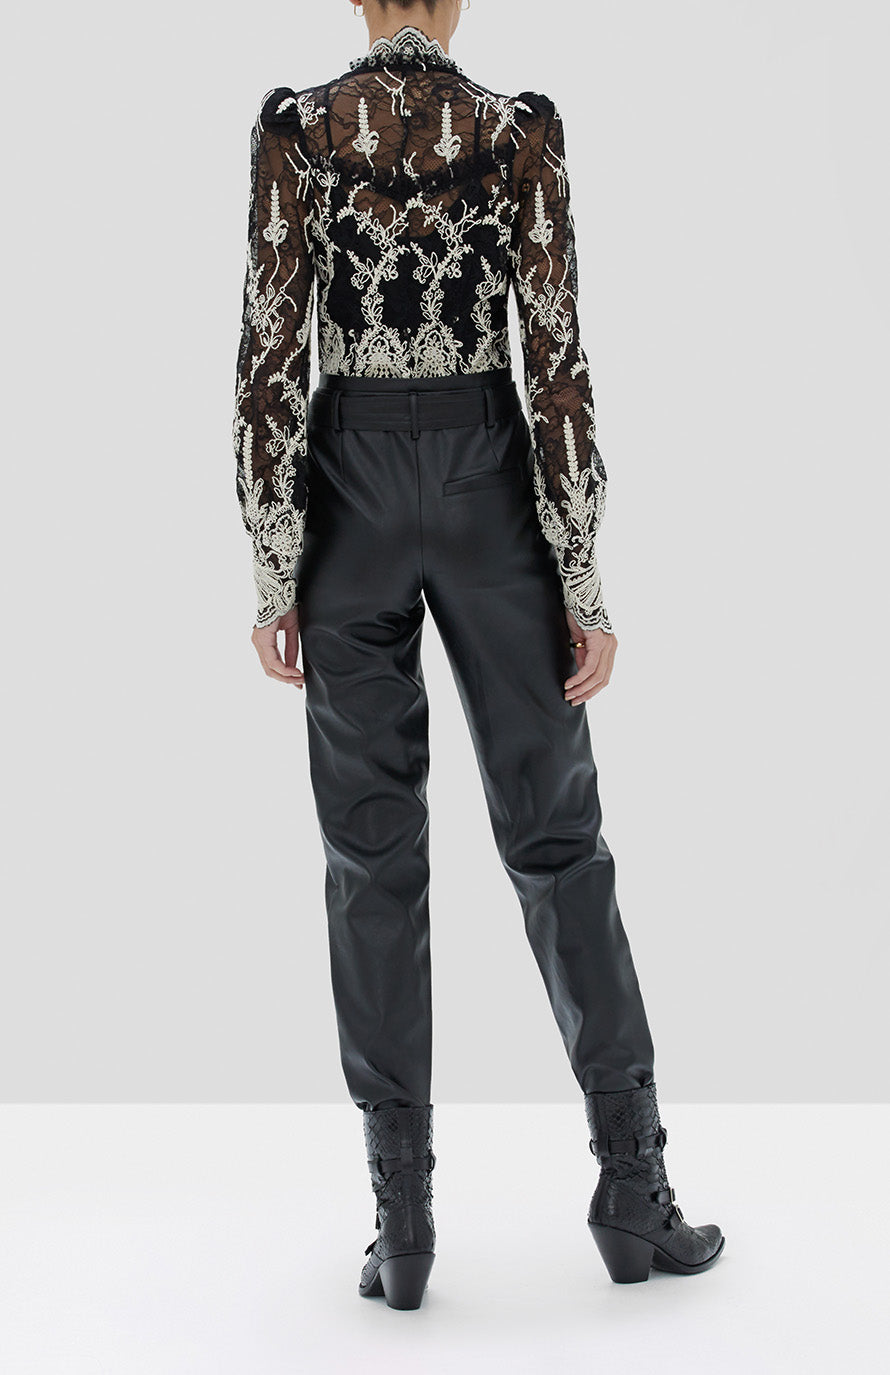 Alexis Boda Top in Black Embroidered Lace and Castile Pant in Black - Rear View